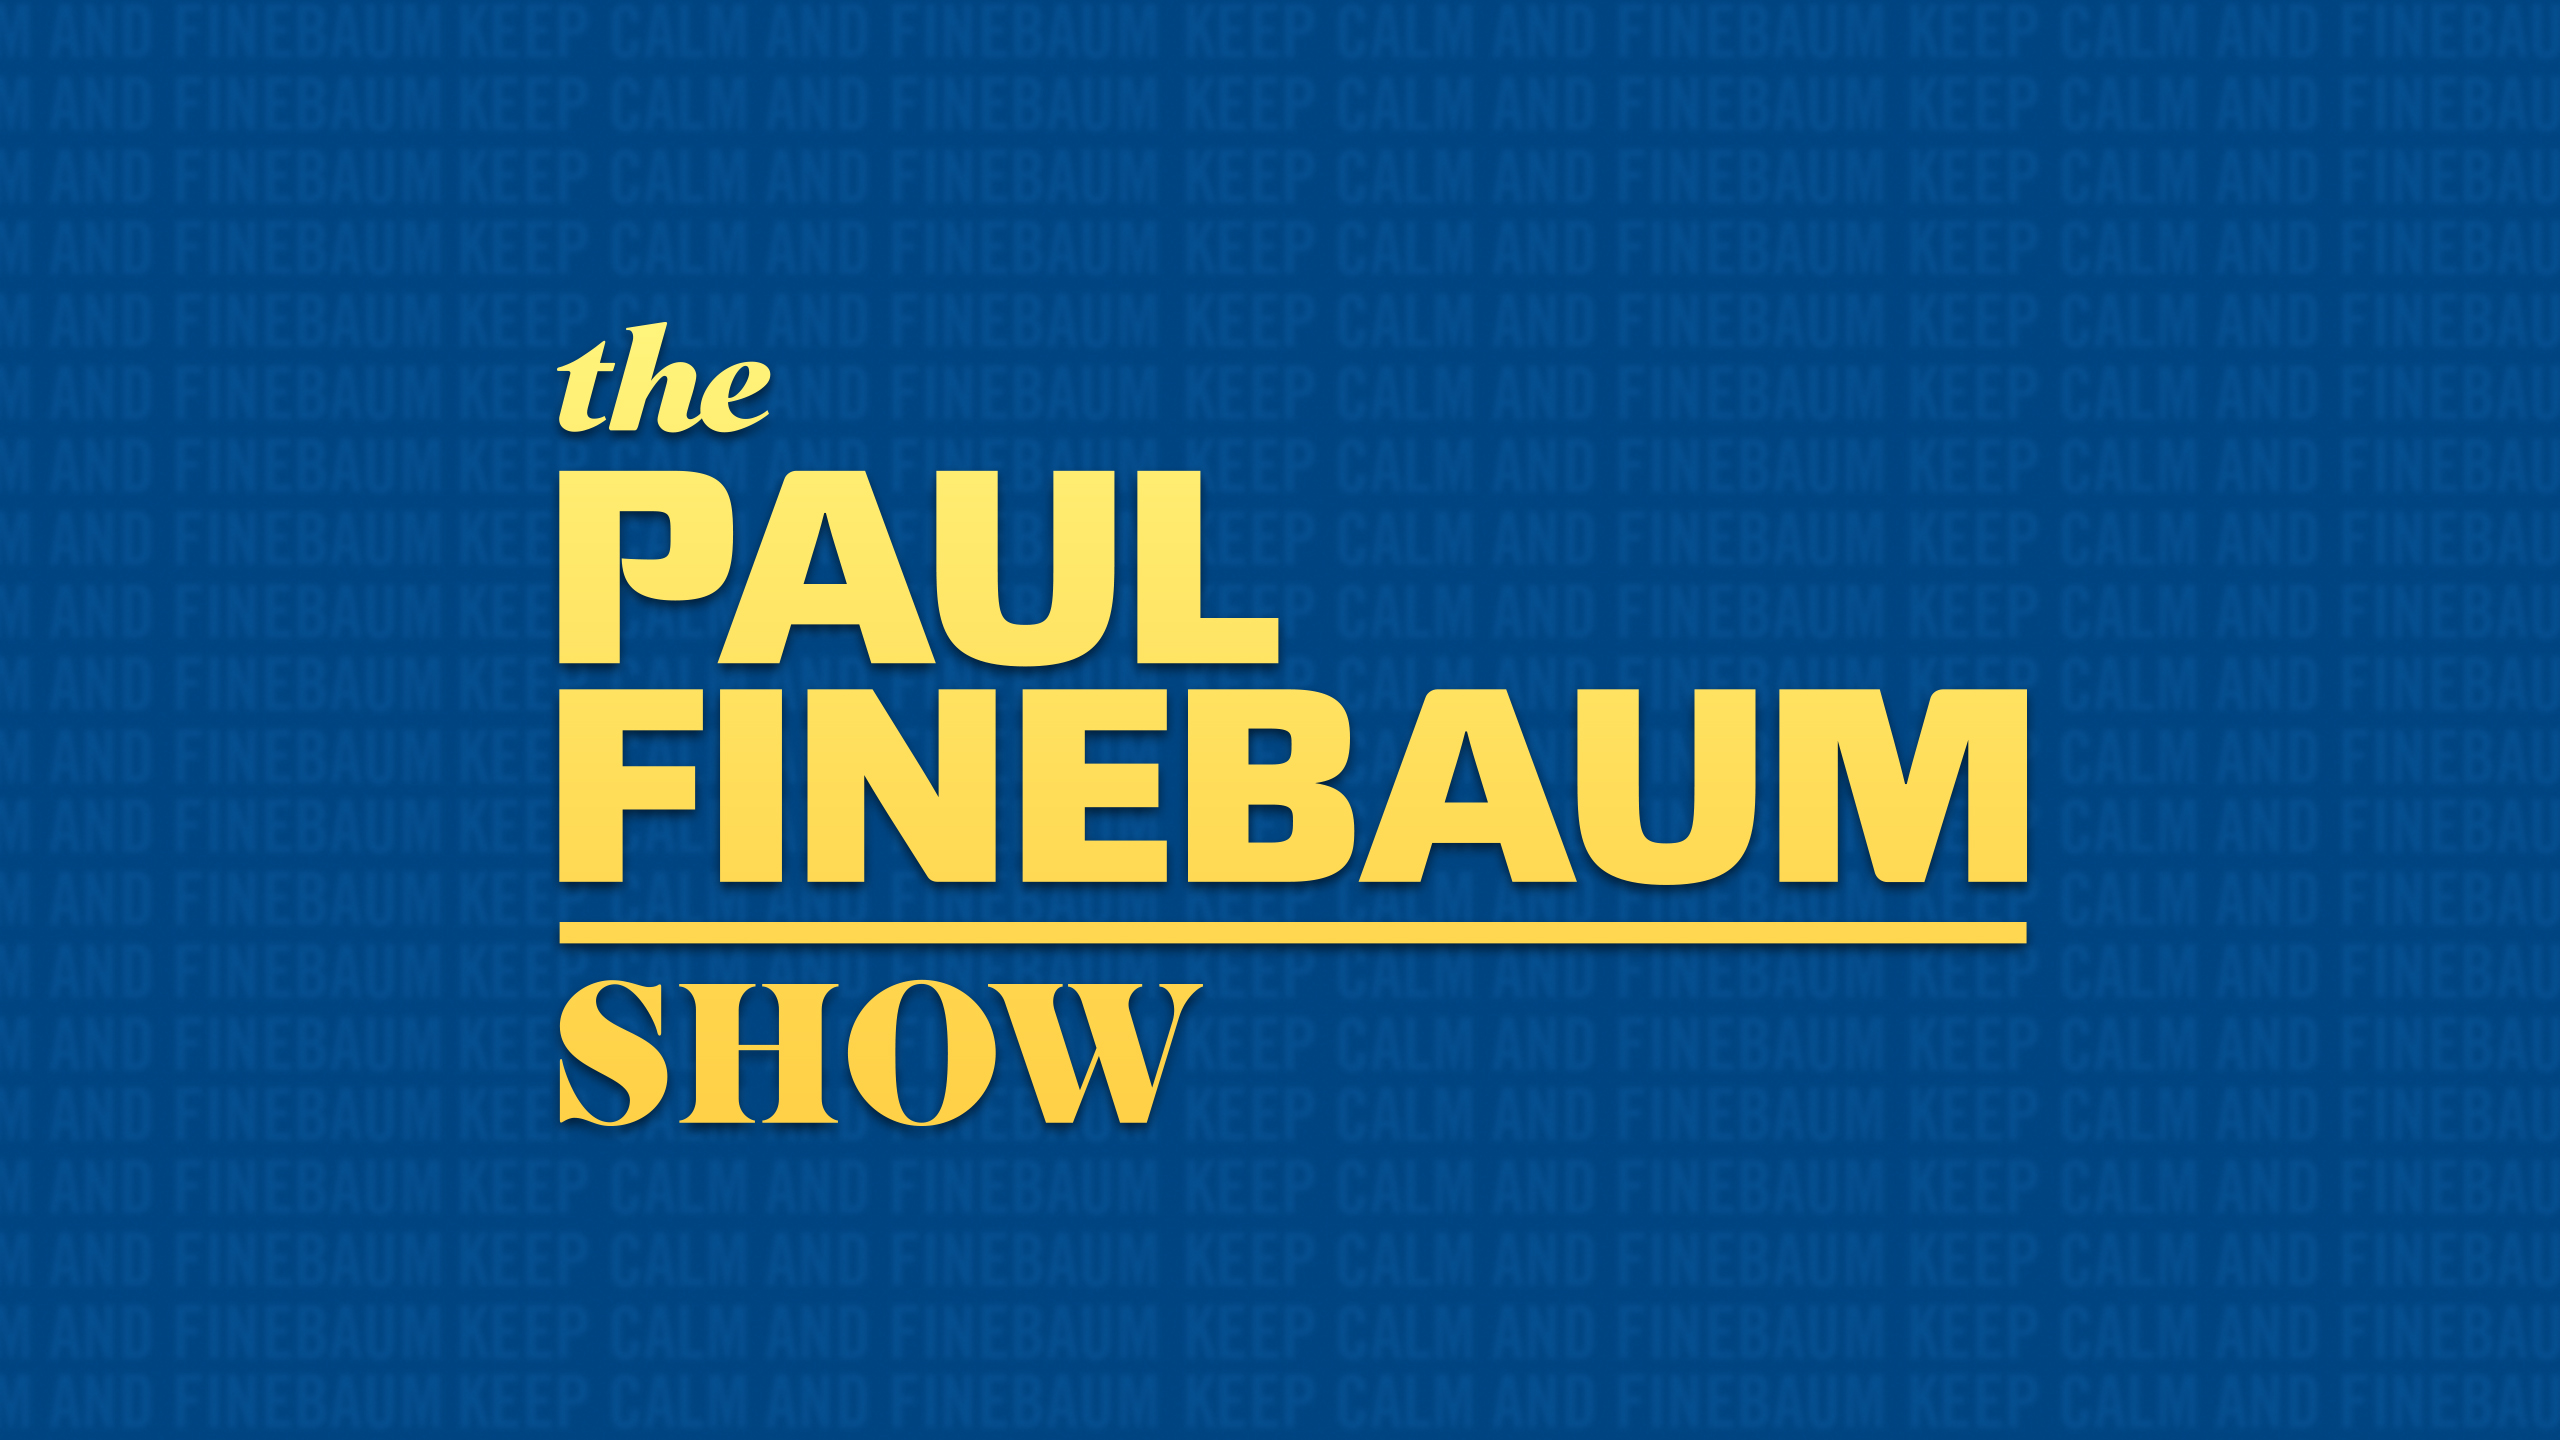 Wed, 2/20 - The Paul Finebaum Show